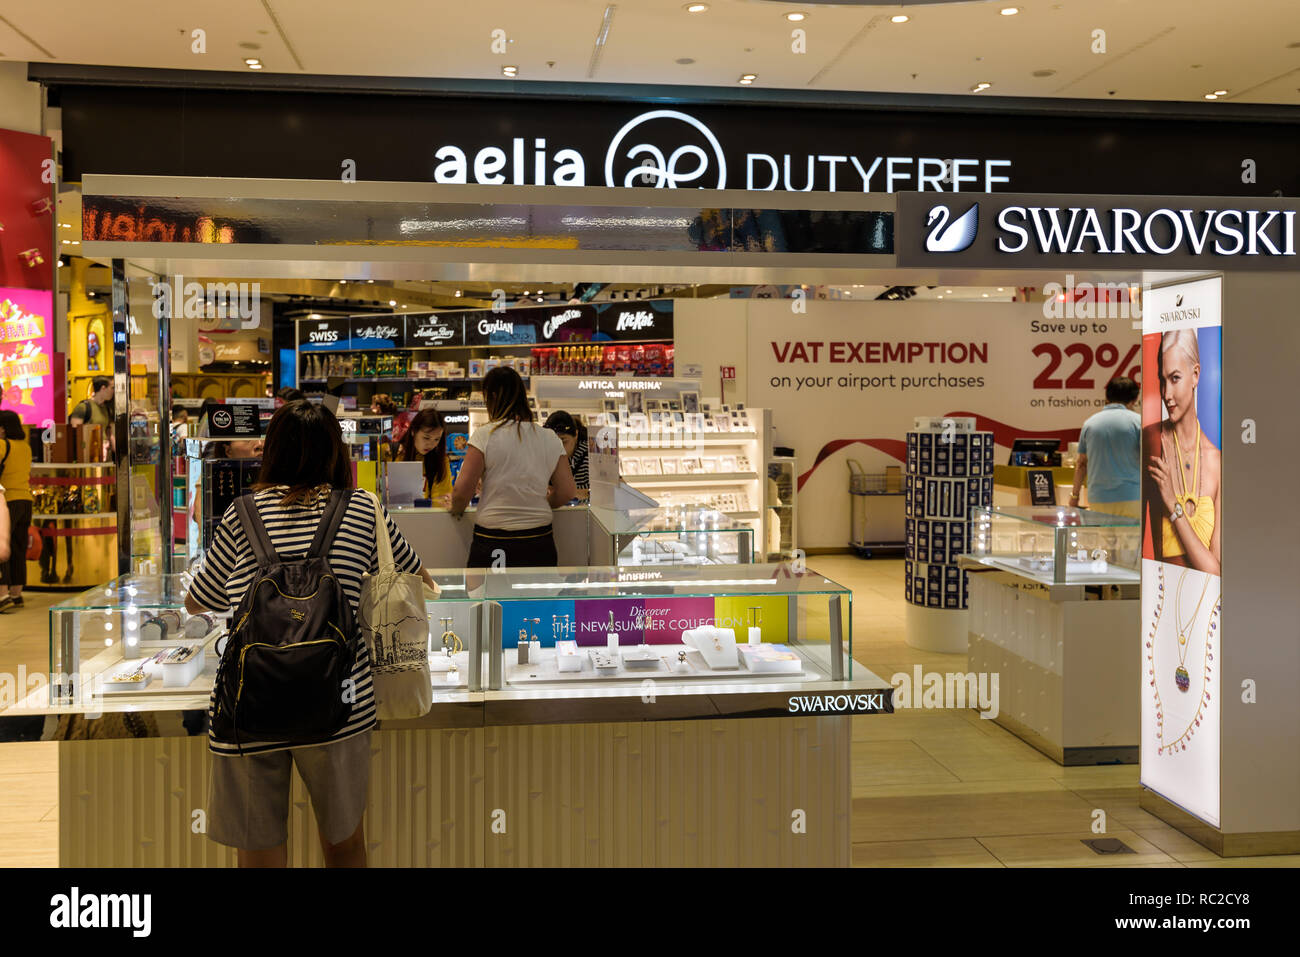 Duty free shop at Rome Fiumicino airport - Stock Image